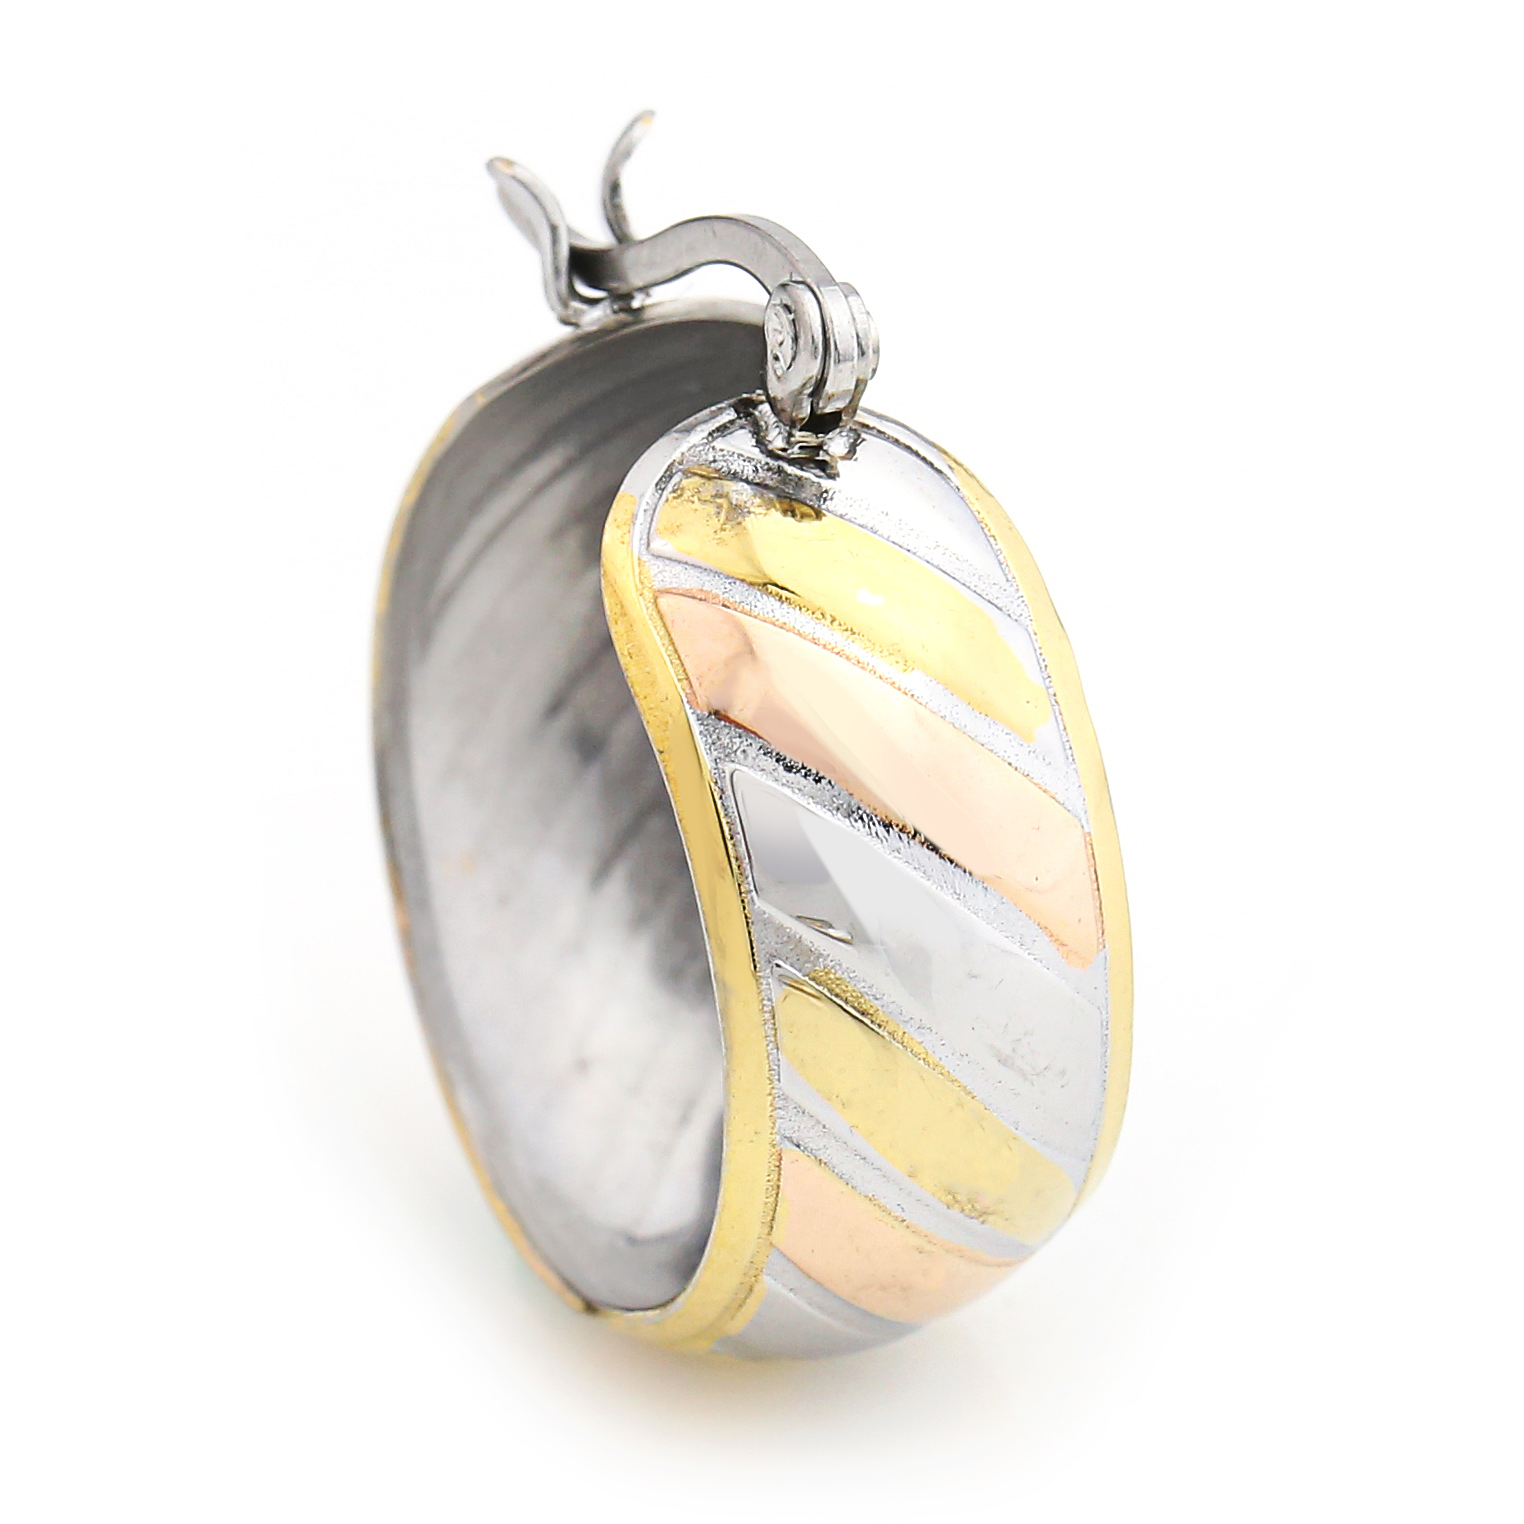 Chunky Striped Tri-Color Silver, Gold & Rose Tone Hoop Earrings- United Elegance image 2